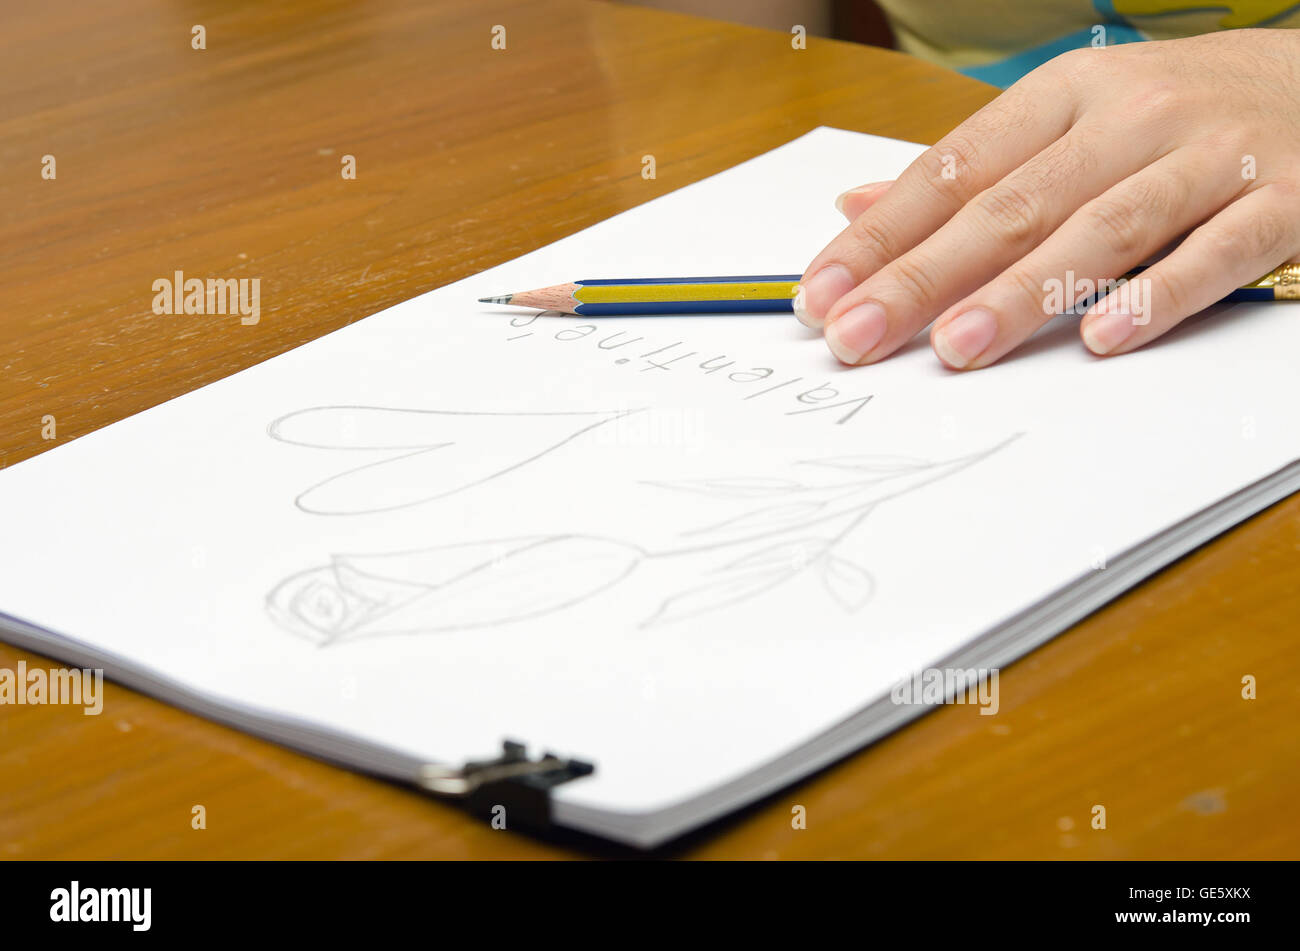 A girl is drawing a rose on a pile of paper for Valentine's event - Stock Image